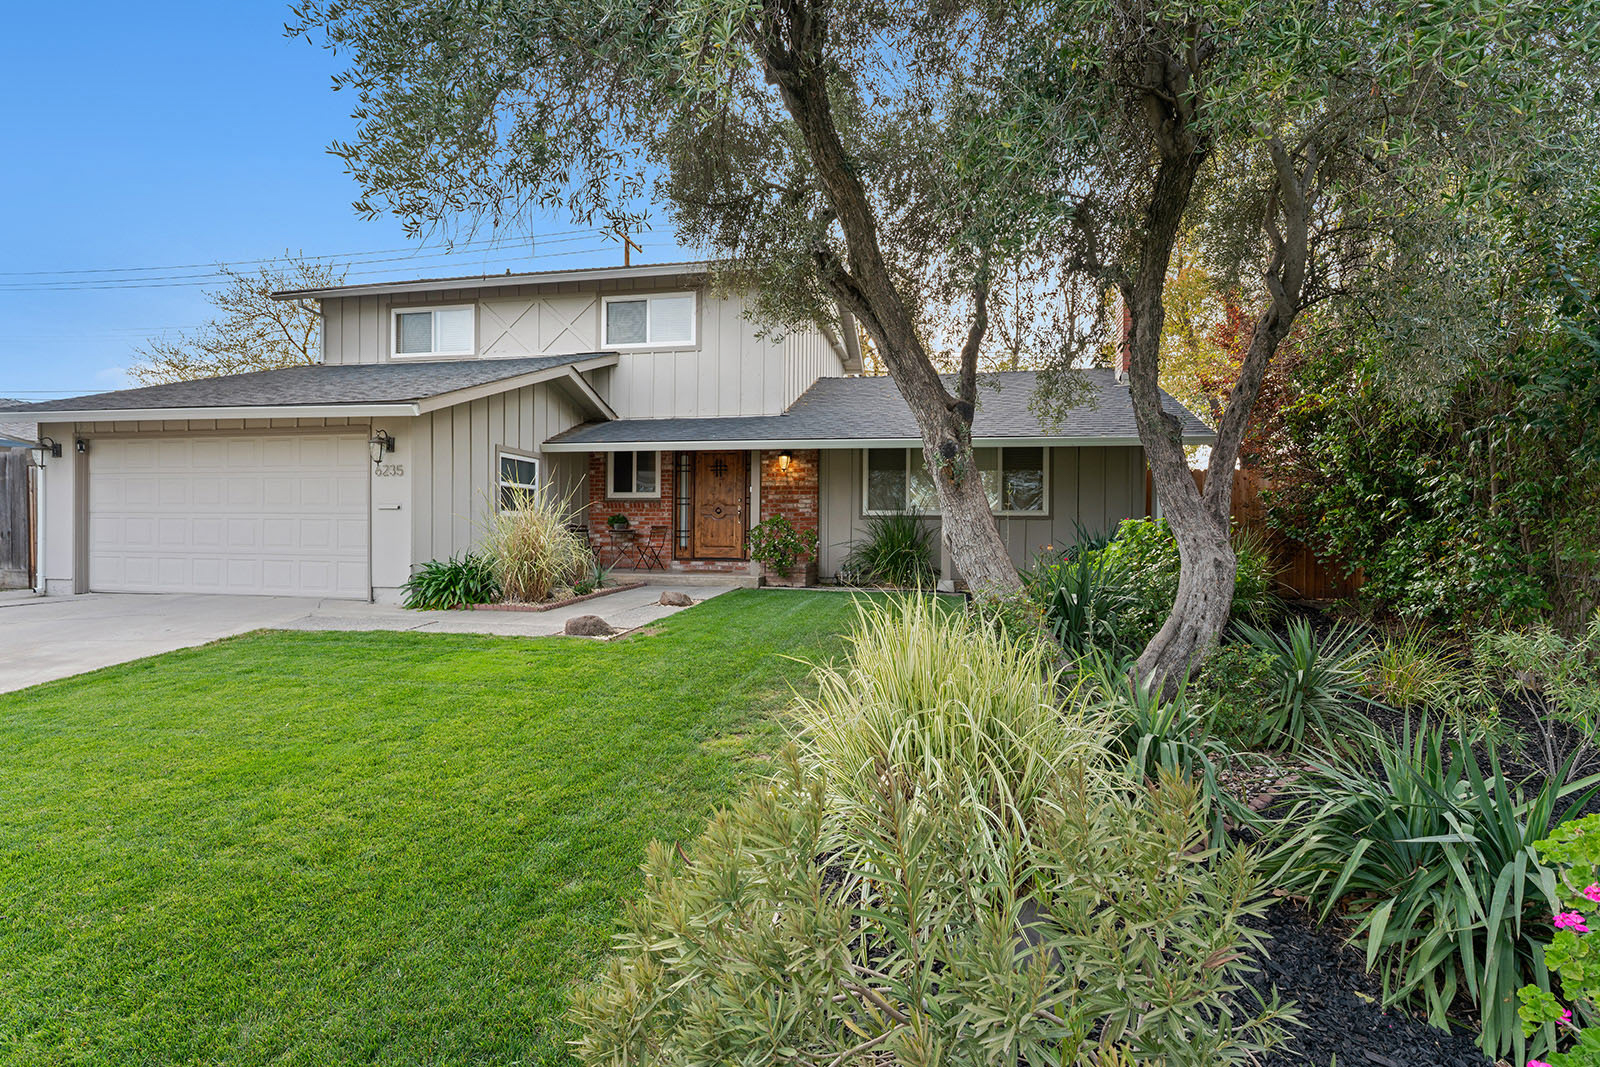 Front of home at 6235 Everest Way, Sacramento, Ca